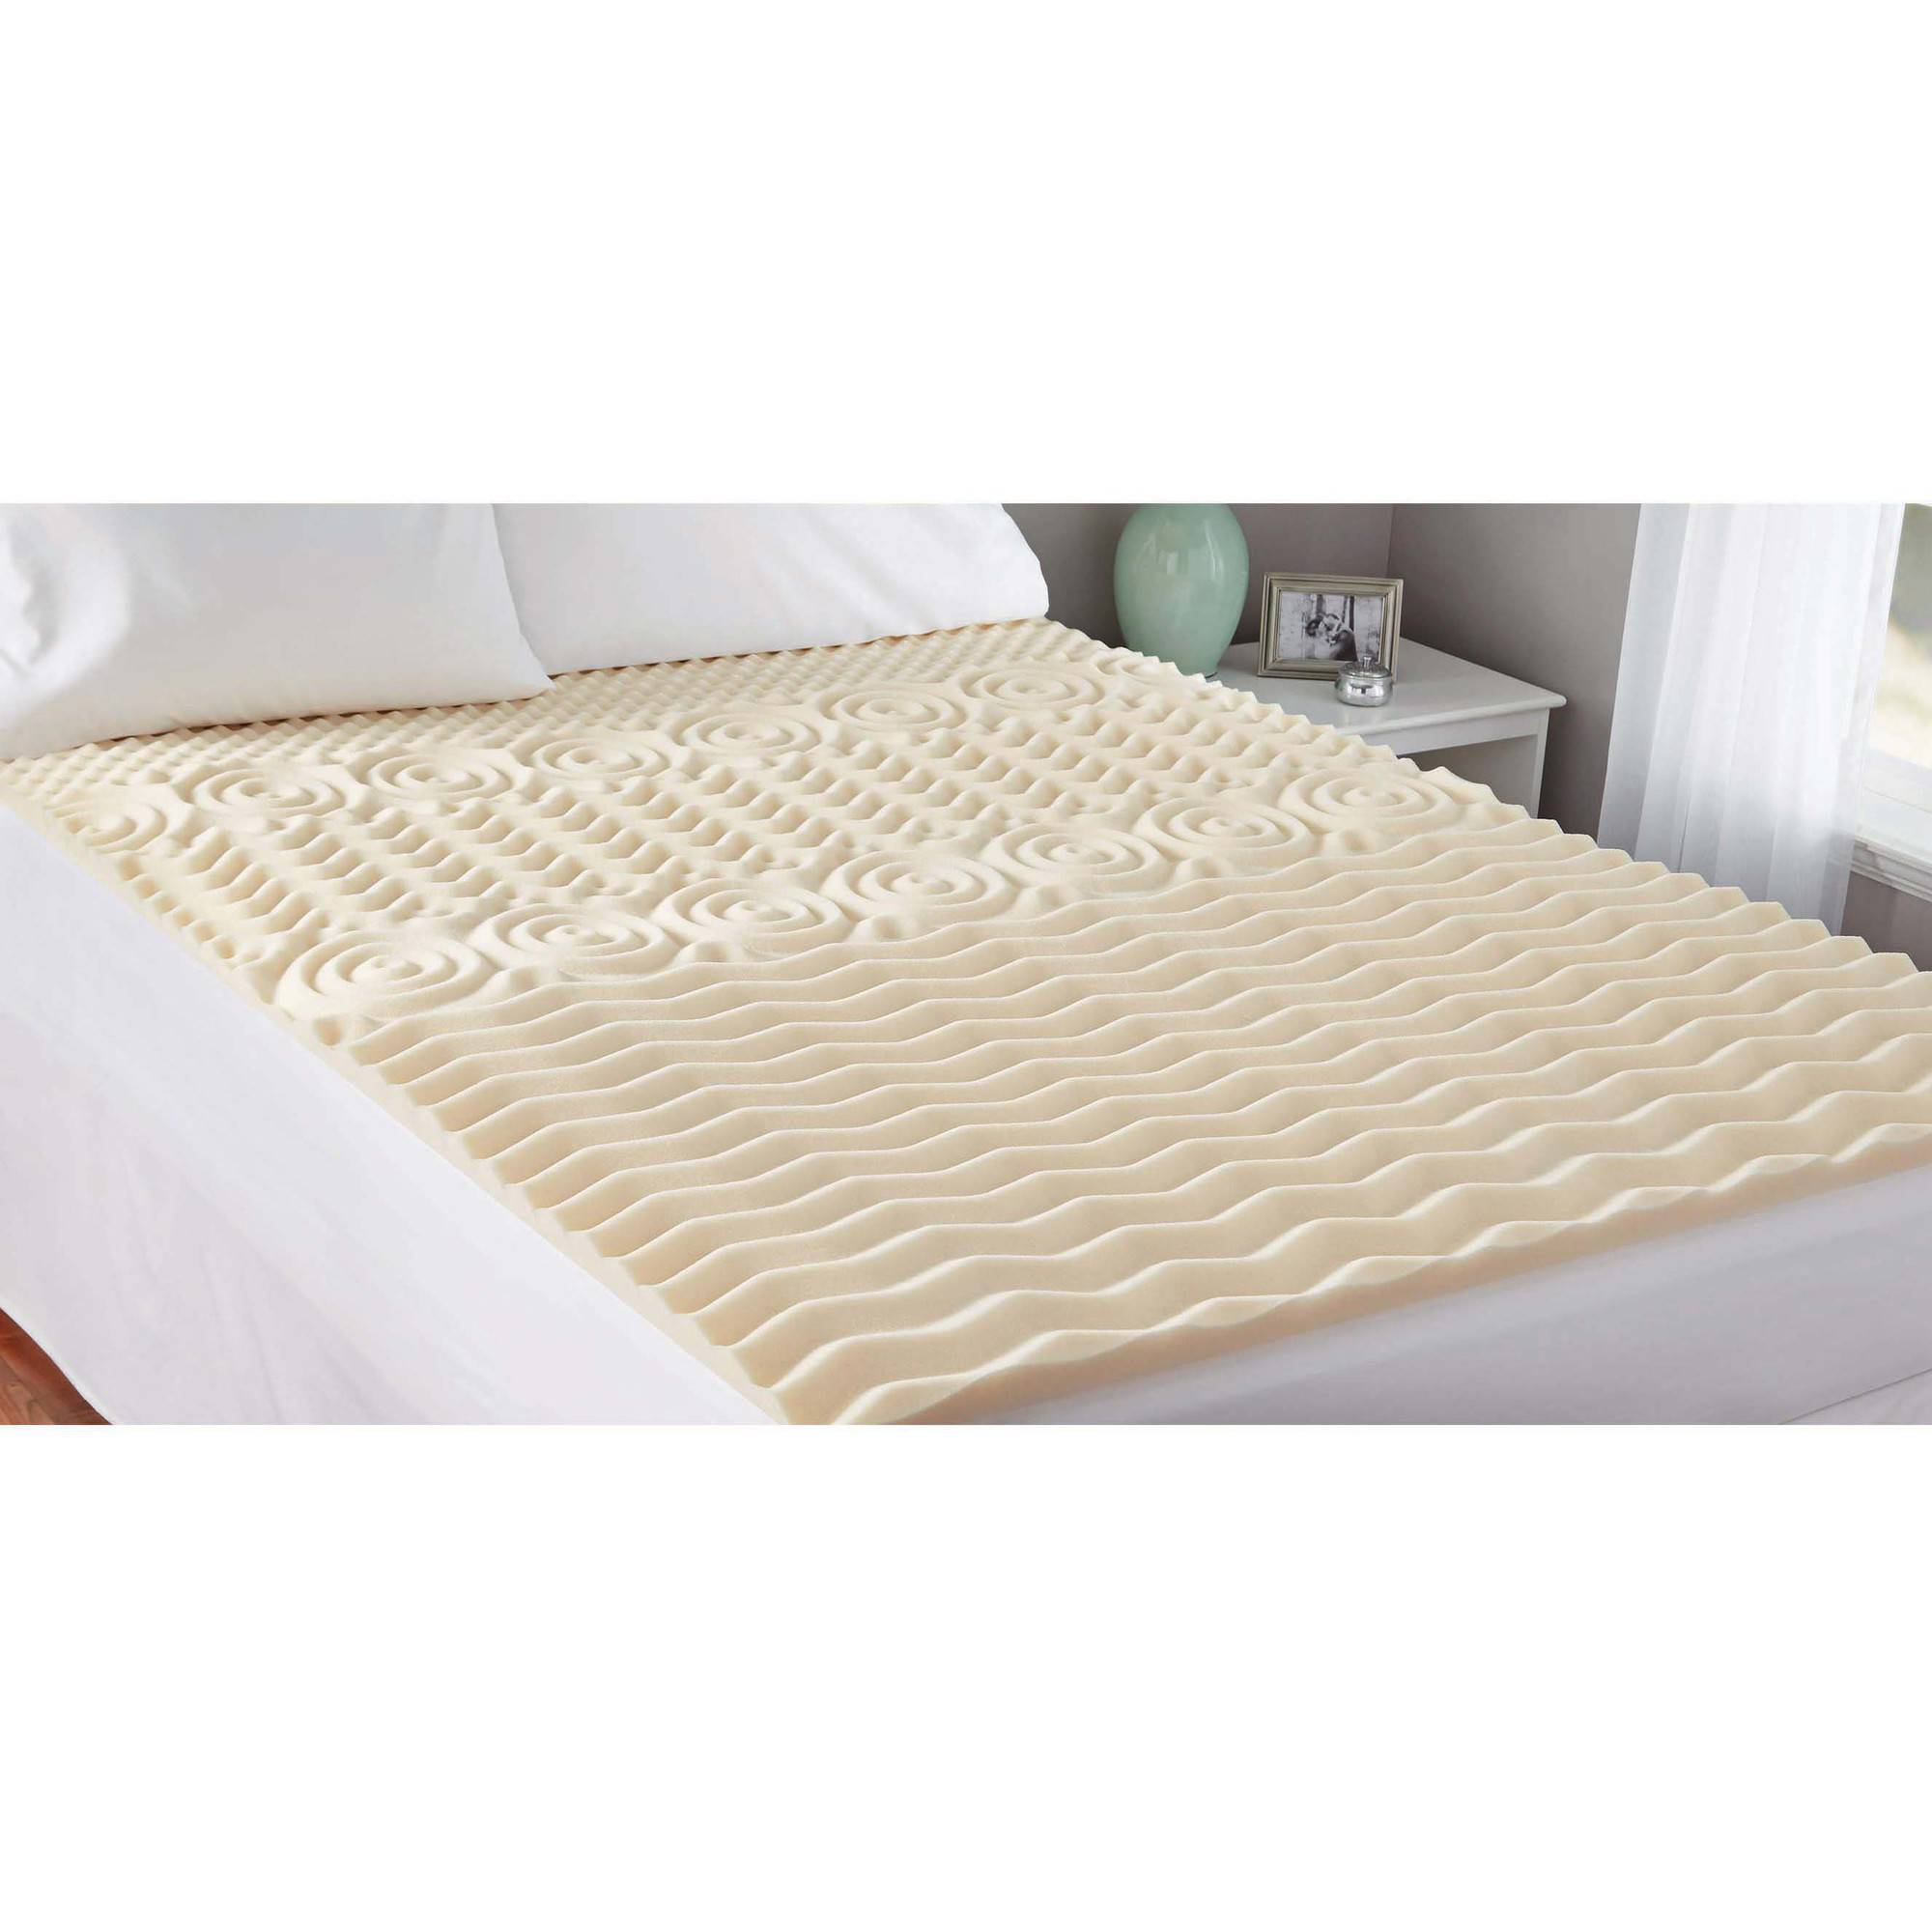 Memory Foam Topper Things To Know Before You Buy